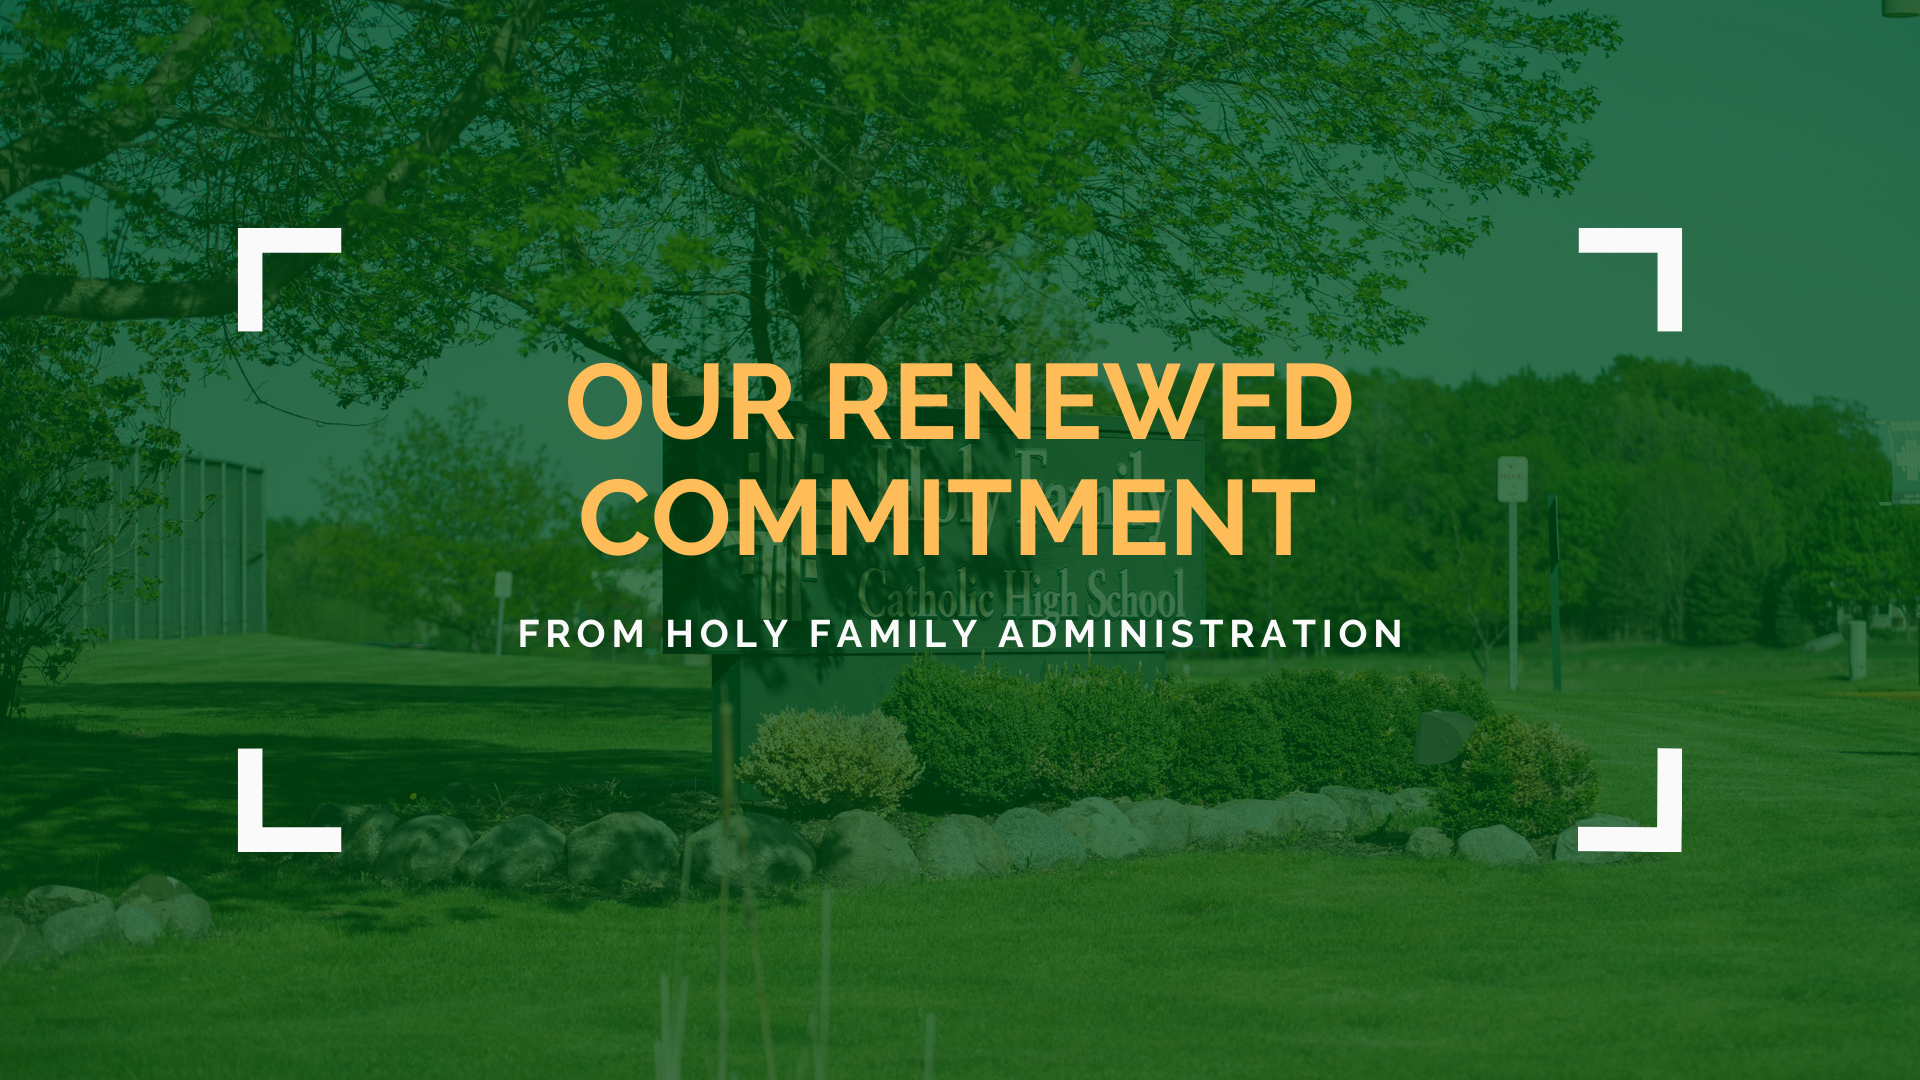 A Renewed Commitment from Holy Family Featured Image.